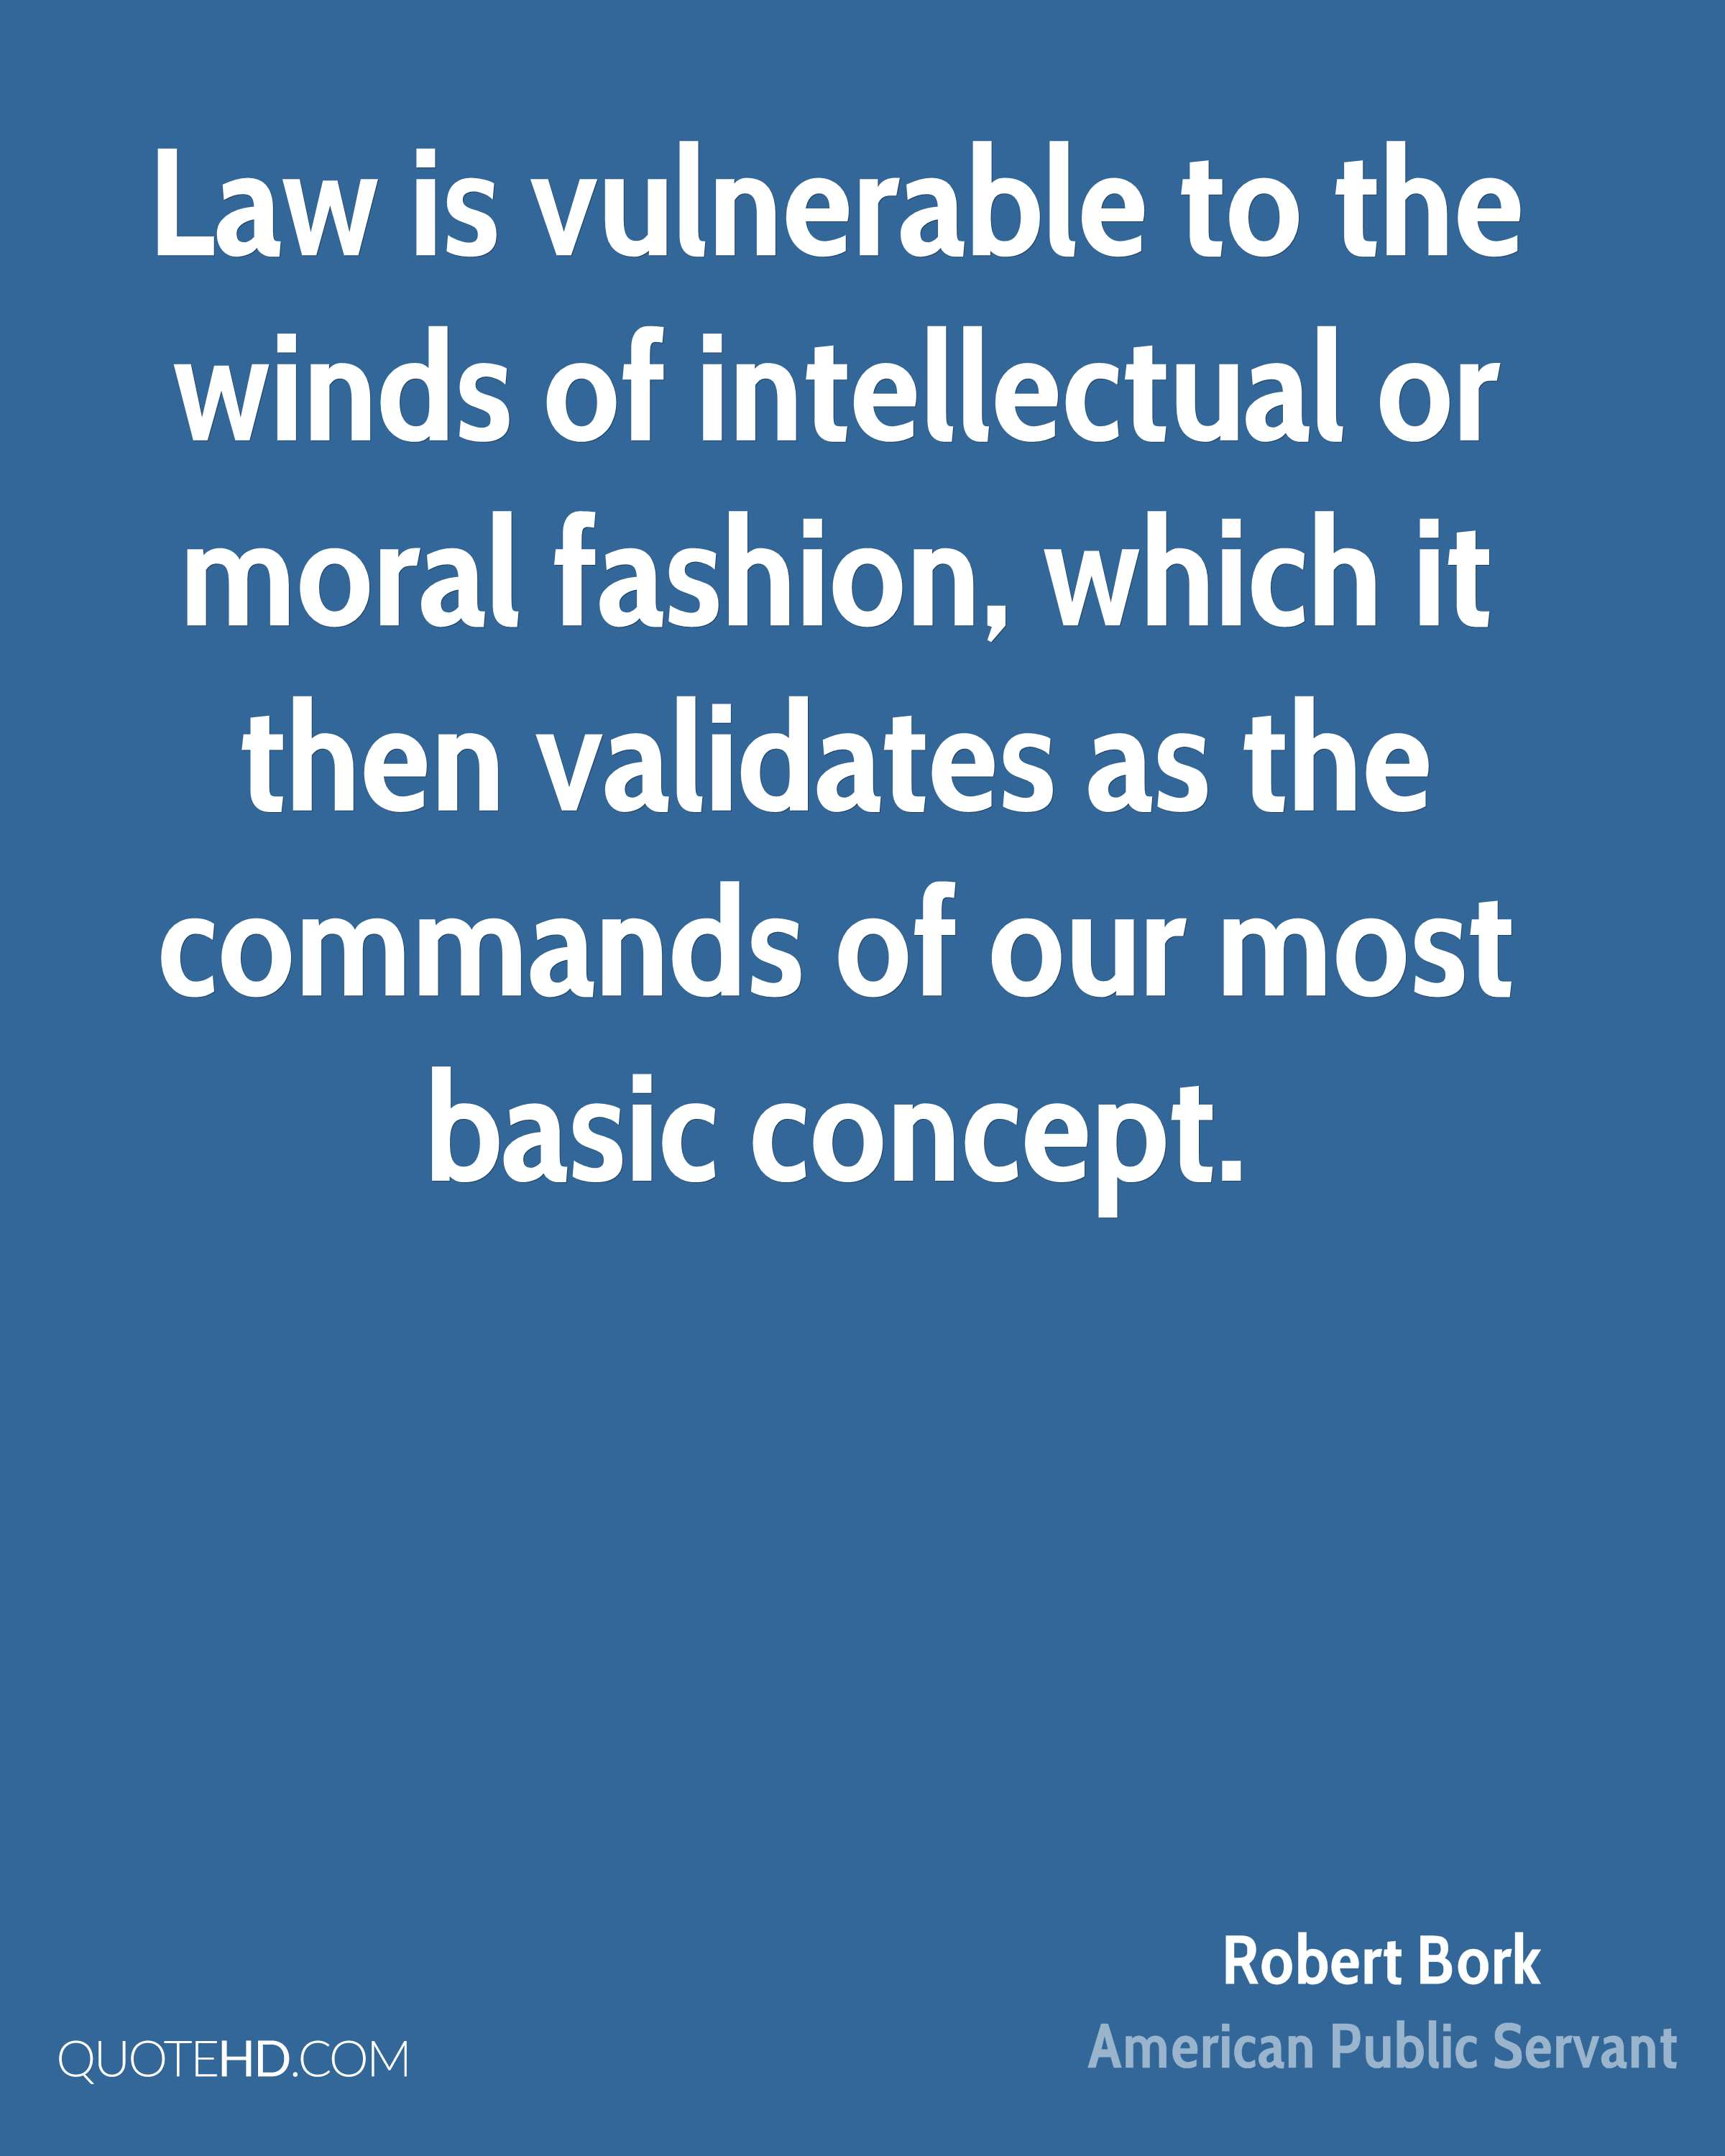 Law is vulnerable to the winds of intellectual or moral fashion, which it then validates as the commands of our most basic concept.